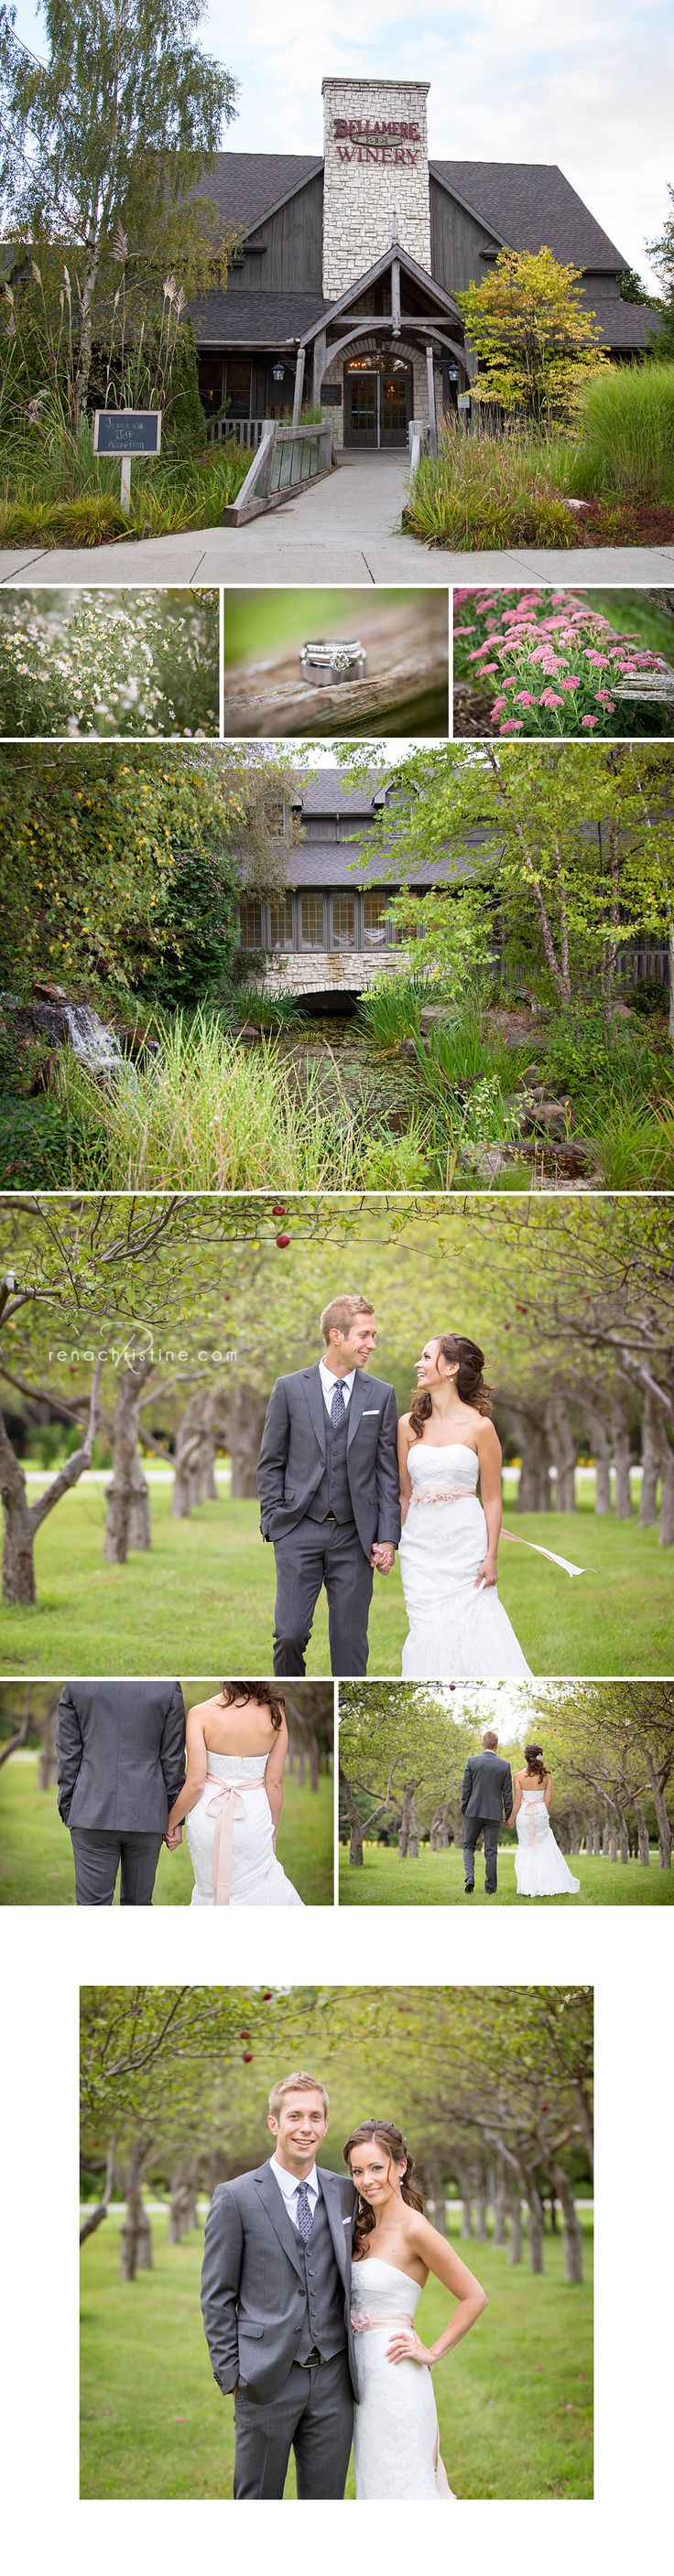 Affordable Wedding Photography London Ontario: Best 25+ Canadian Wedding Venues Ideas On Pinterest